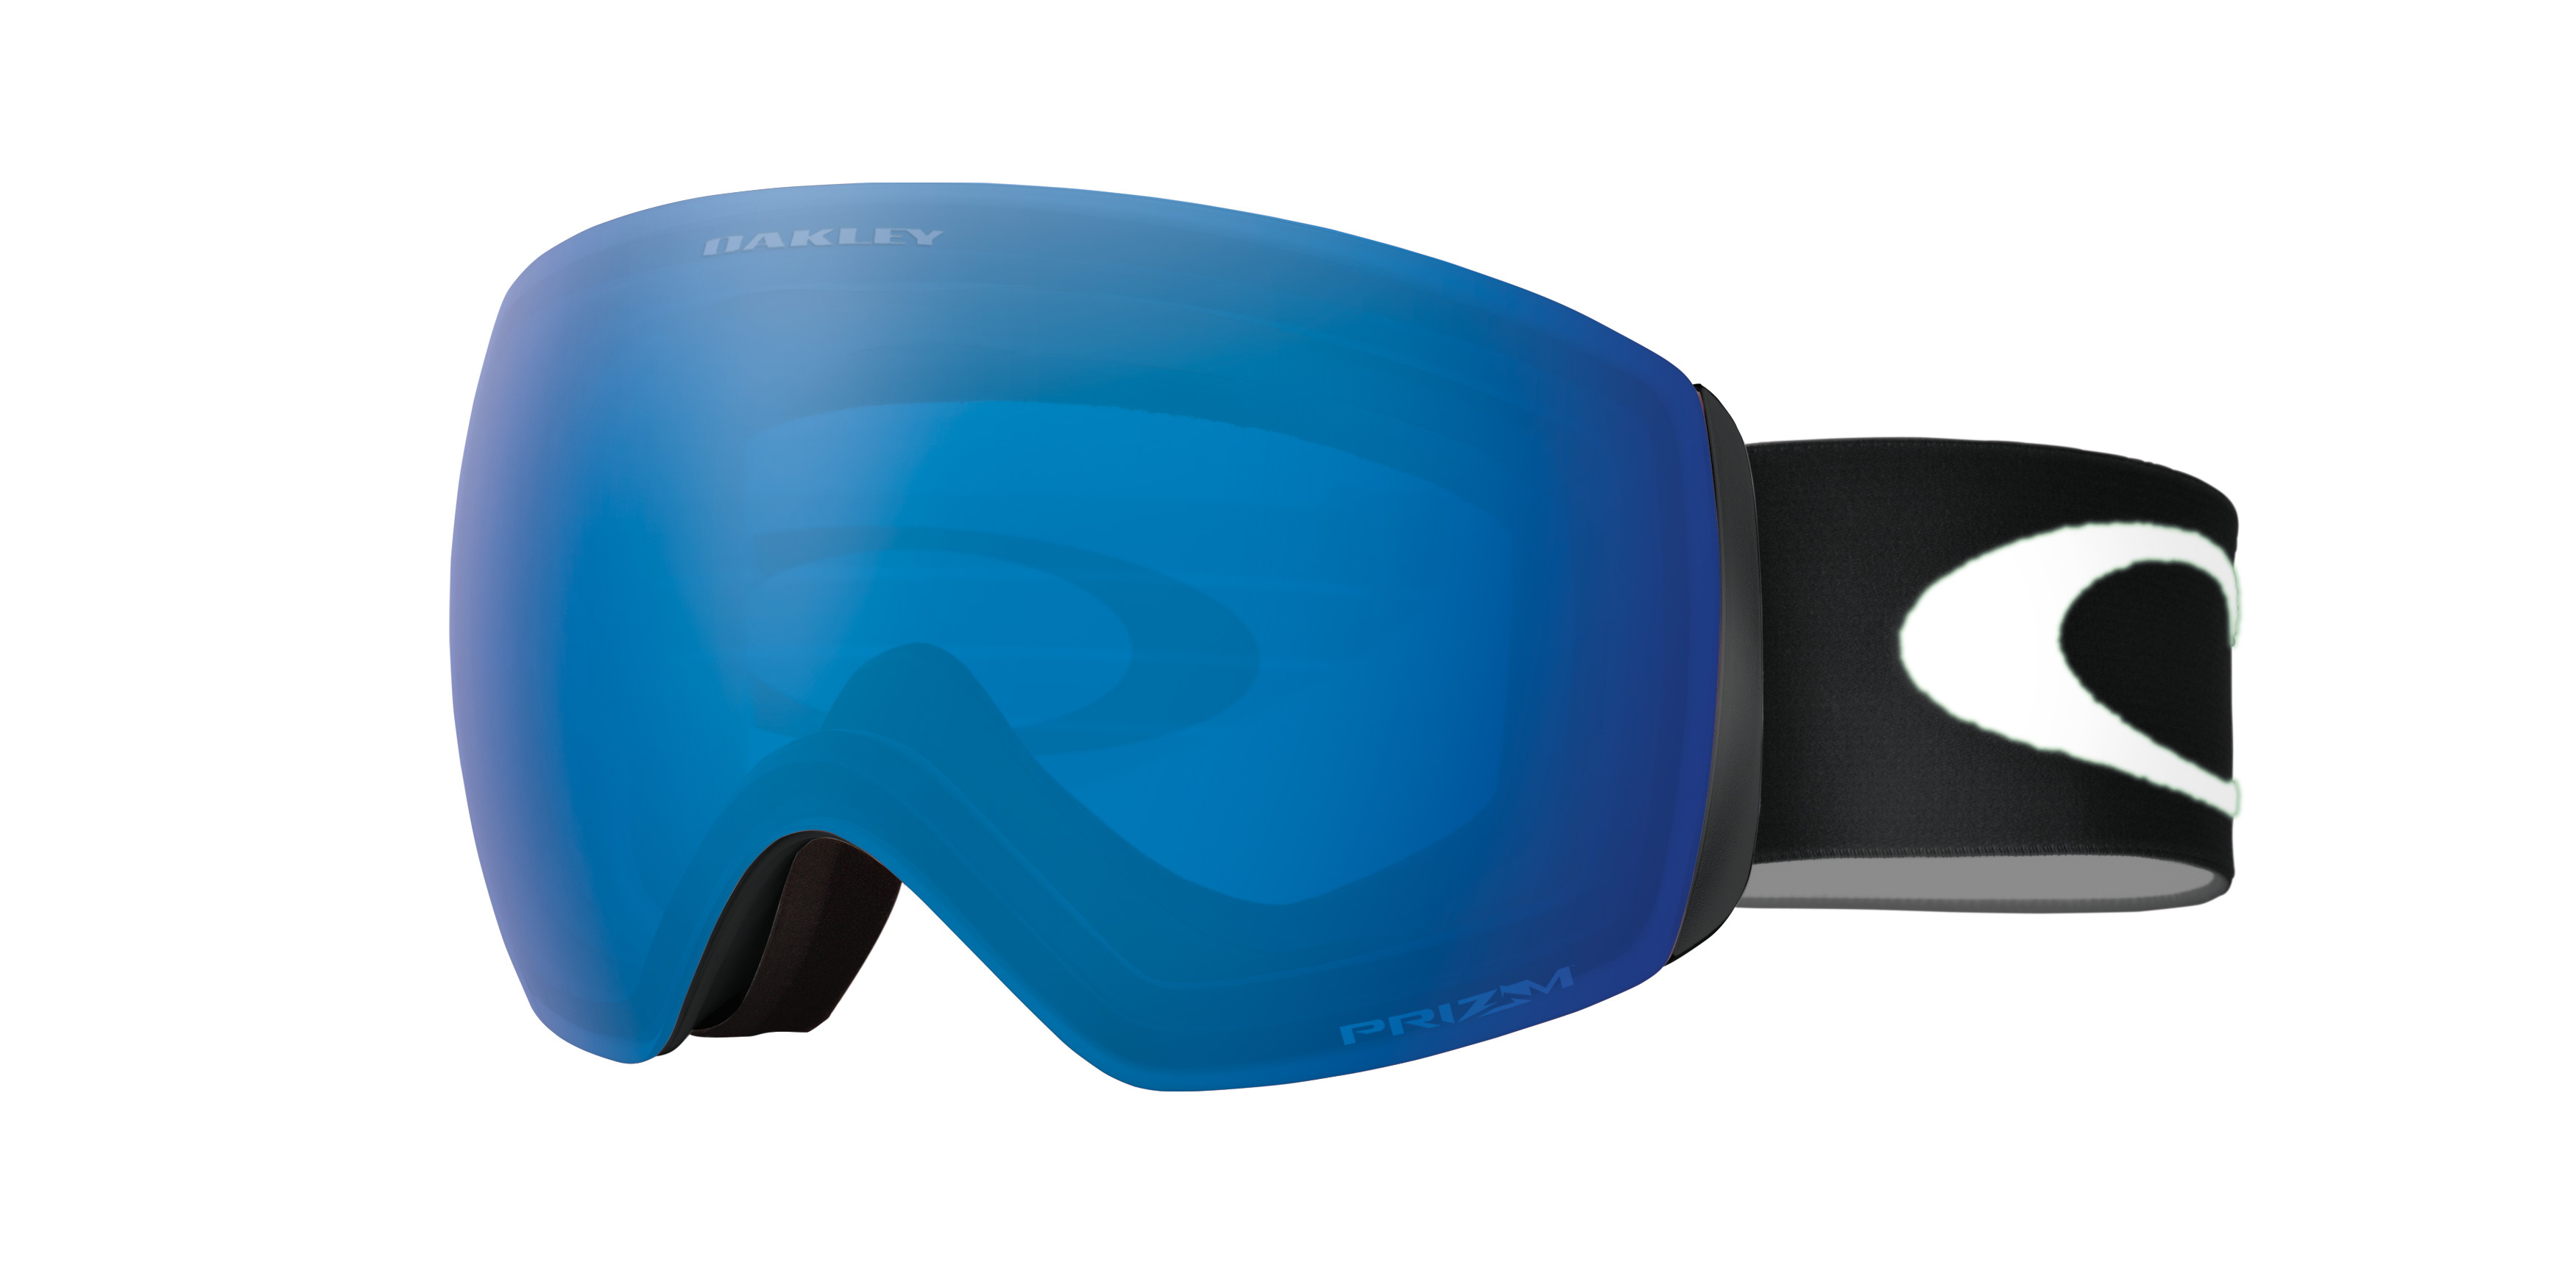 OAKLEY MASCHERA FLIGHT DECK XM (706441) - 2021